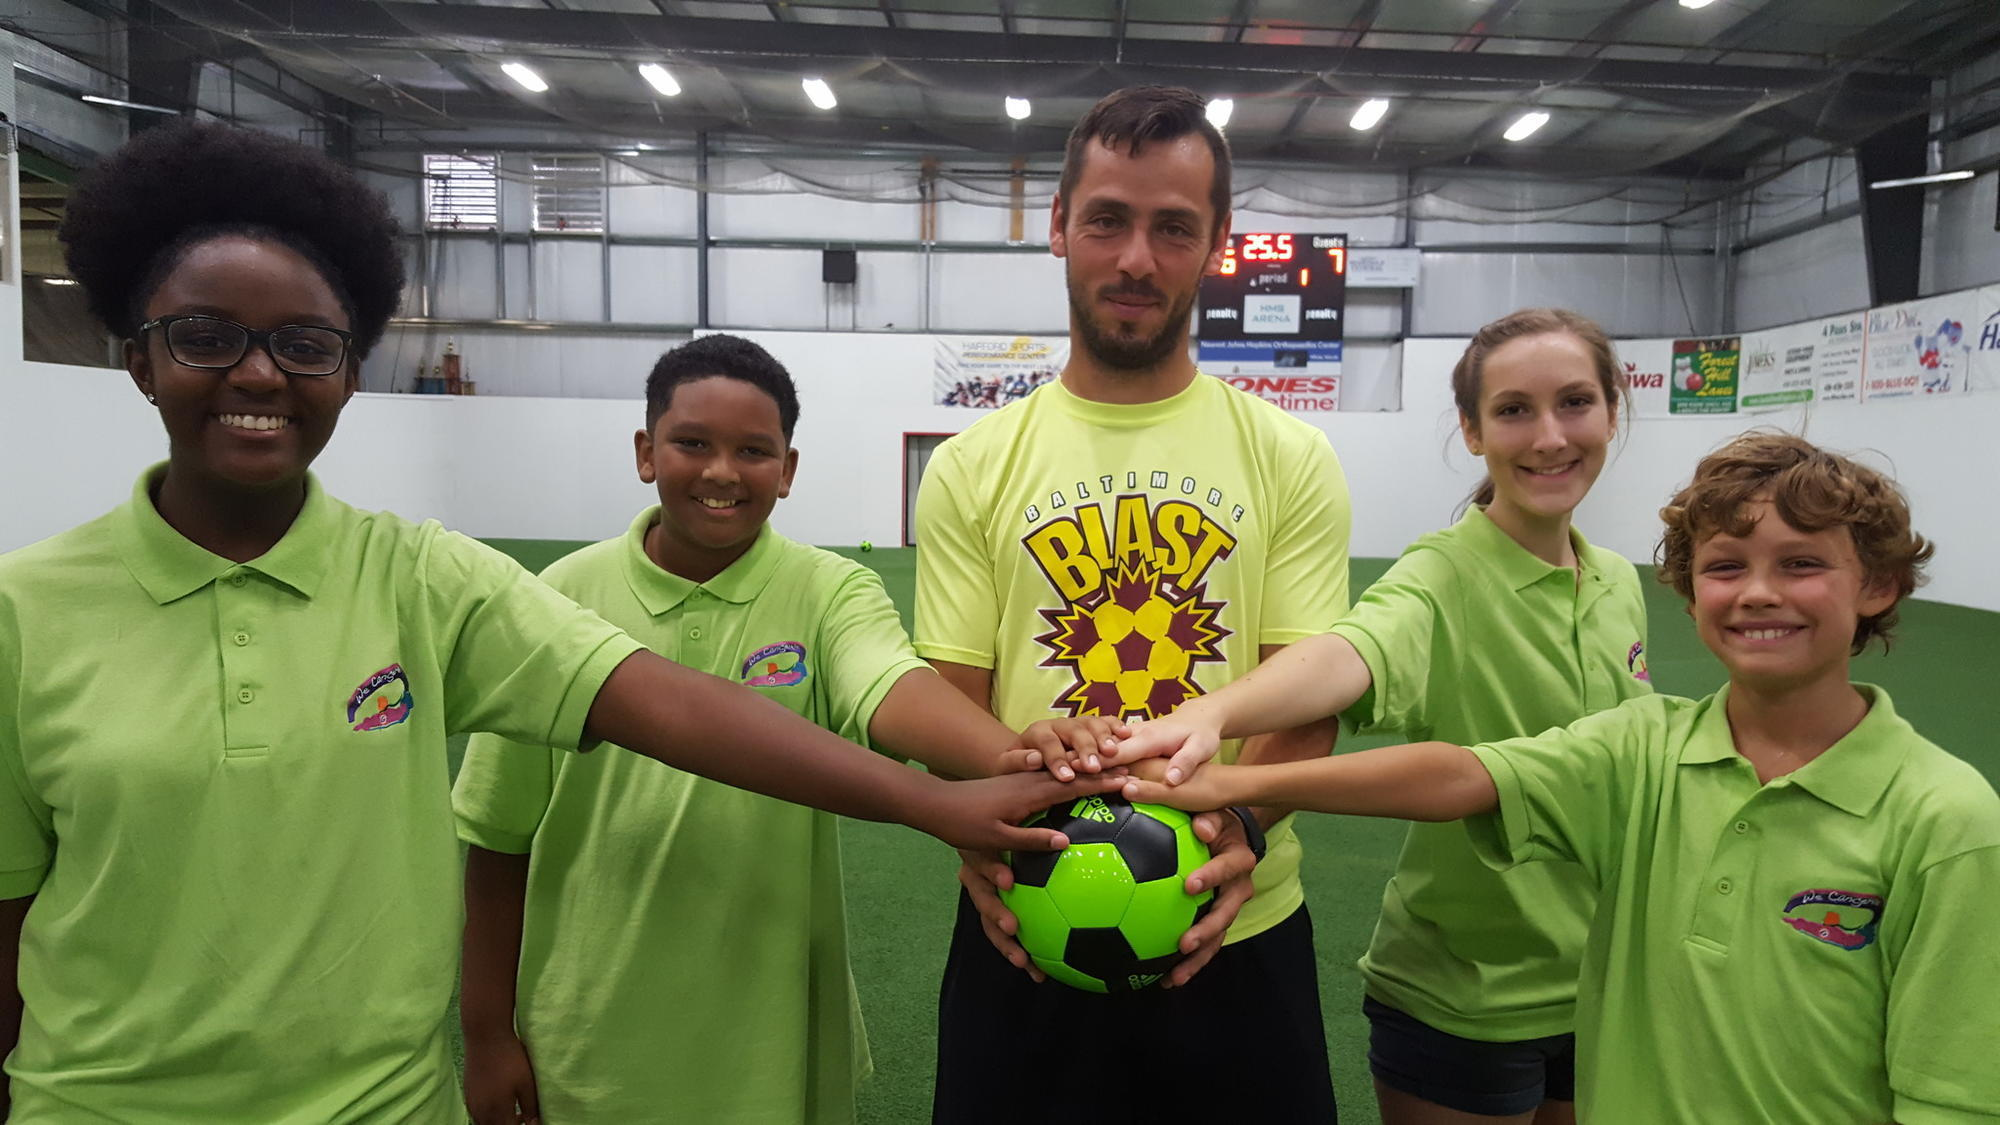 """Baltimore Blast players Vanzela, Saunders join """"Goals for"""